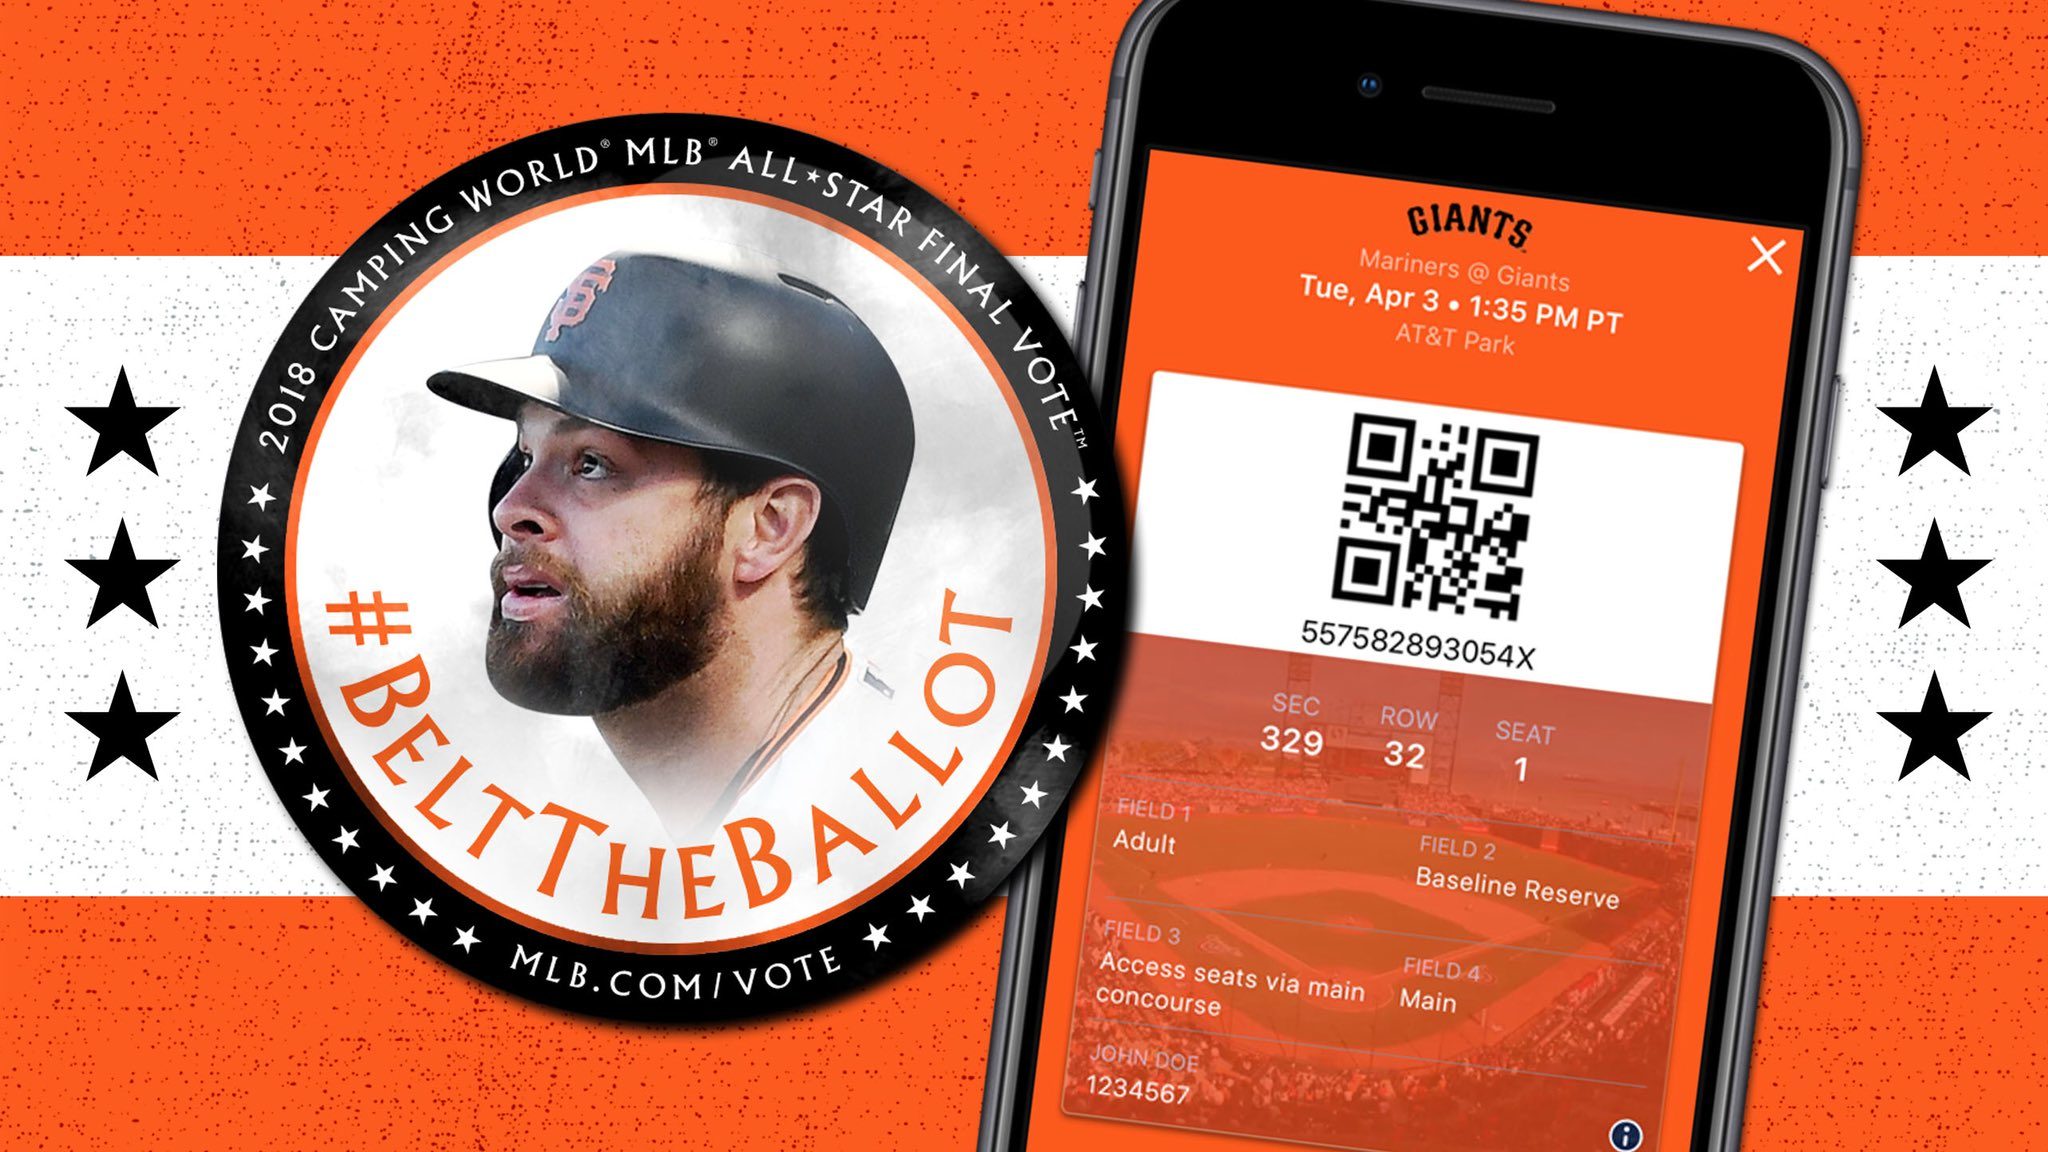 $9 tickets when you vote for #9!   #BeltTheBallot: https://t.co/dmEb66KxYW  INFO: https://t.co/dlQo5J4ybP  #SFGiants https://t.co/4IaJdvDdJM